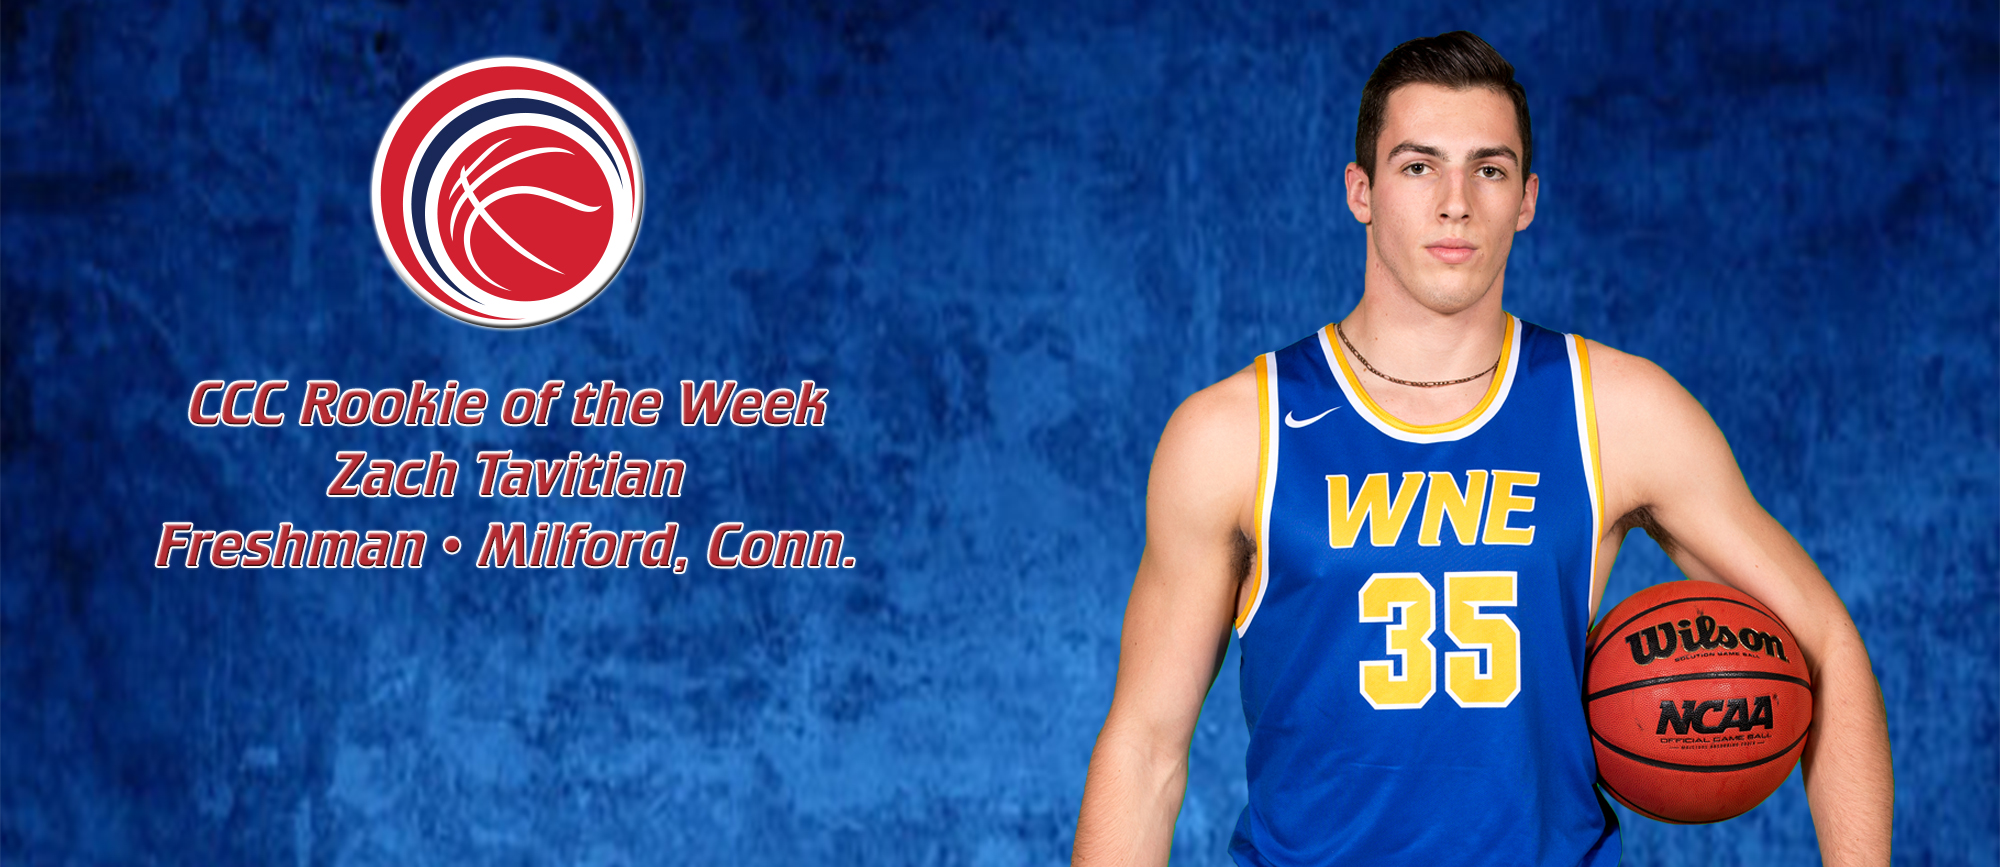 Zach Tavitian Named CCC Rookie of the Week